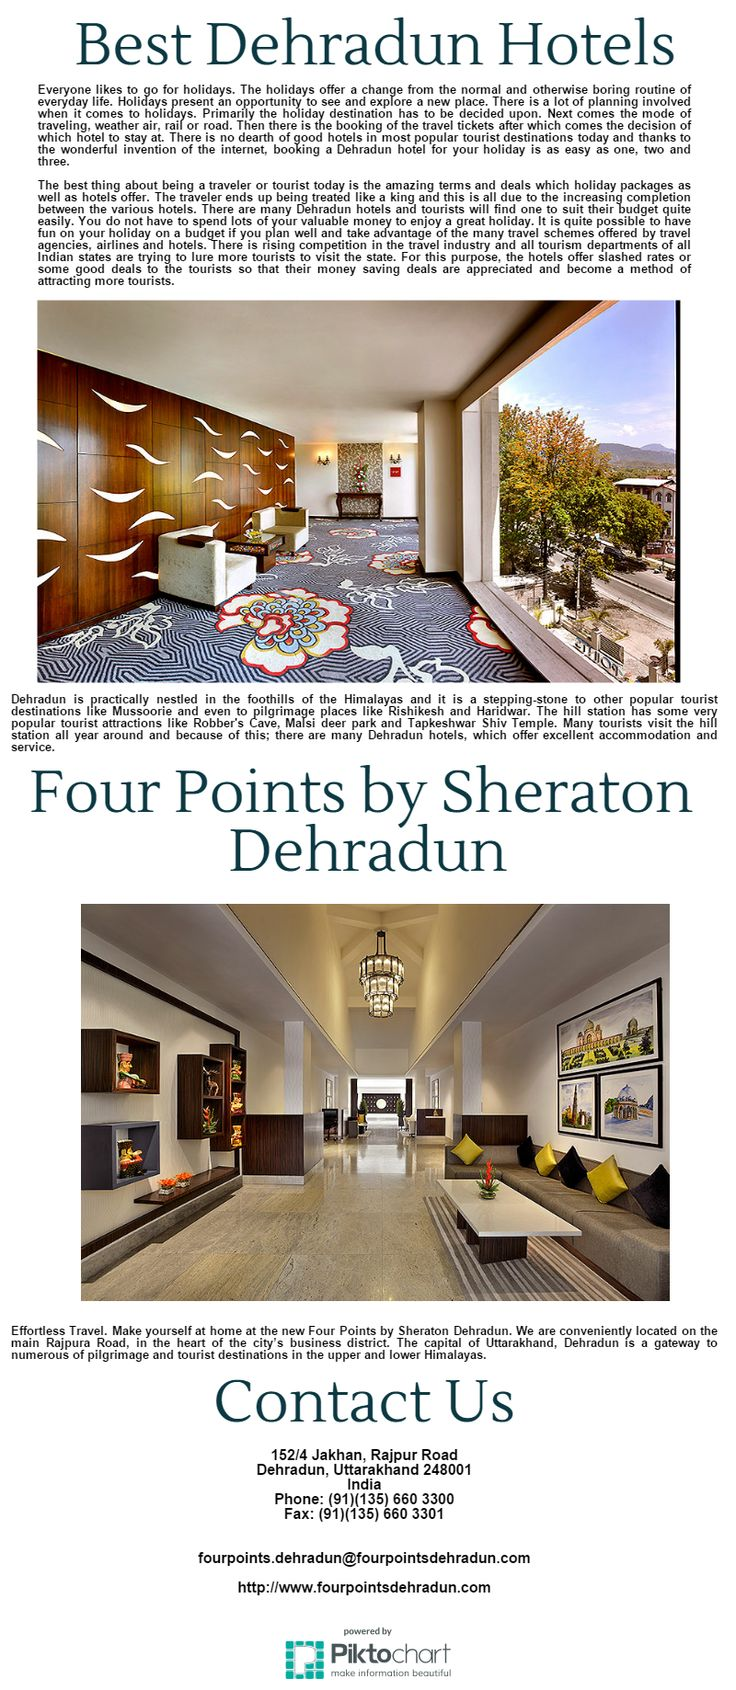 Effortless Travel. Make yourself at home at the new Four Points by Sheraton Dehradun. We are conveniently located on the main Rajpura Road, in the heart of the city's business district.